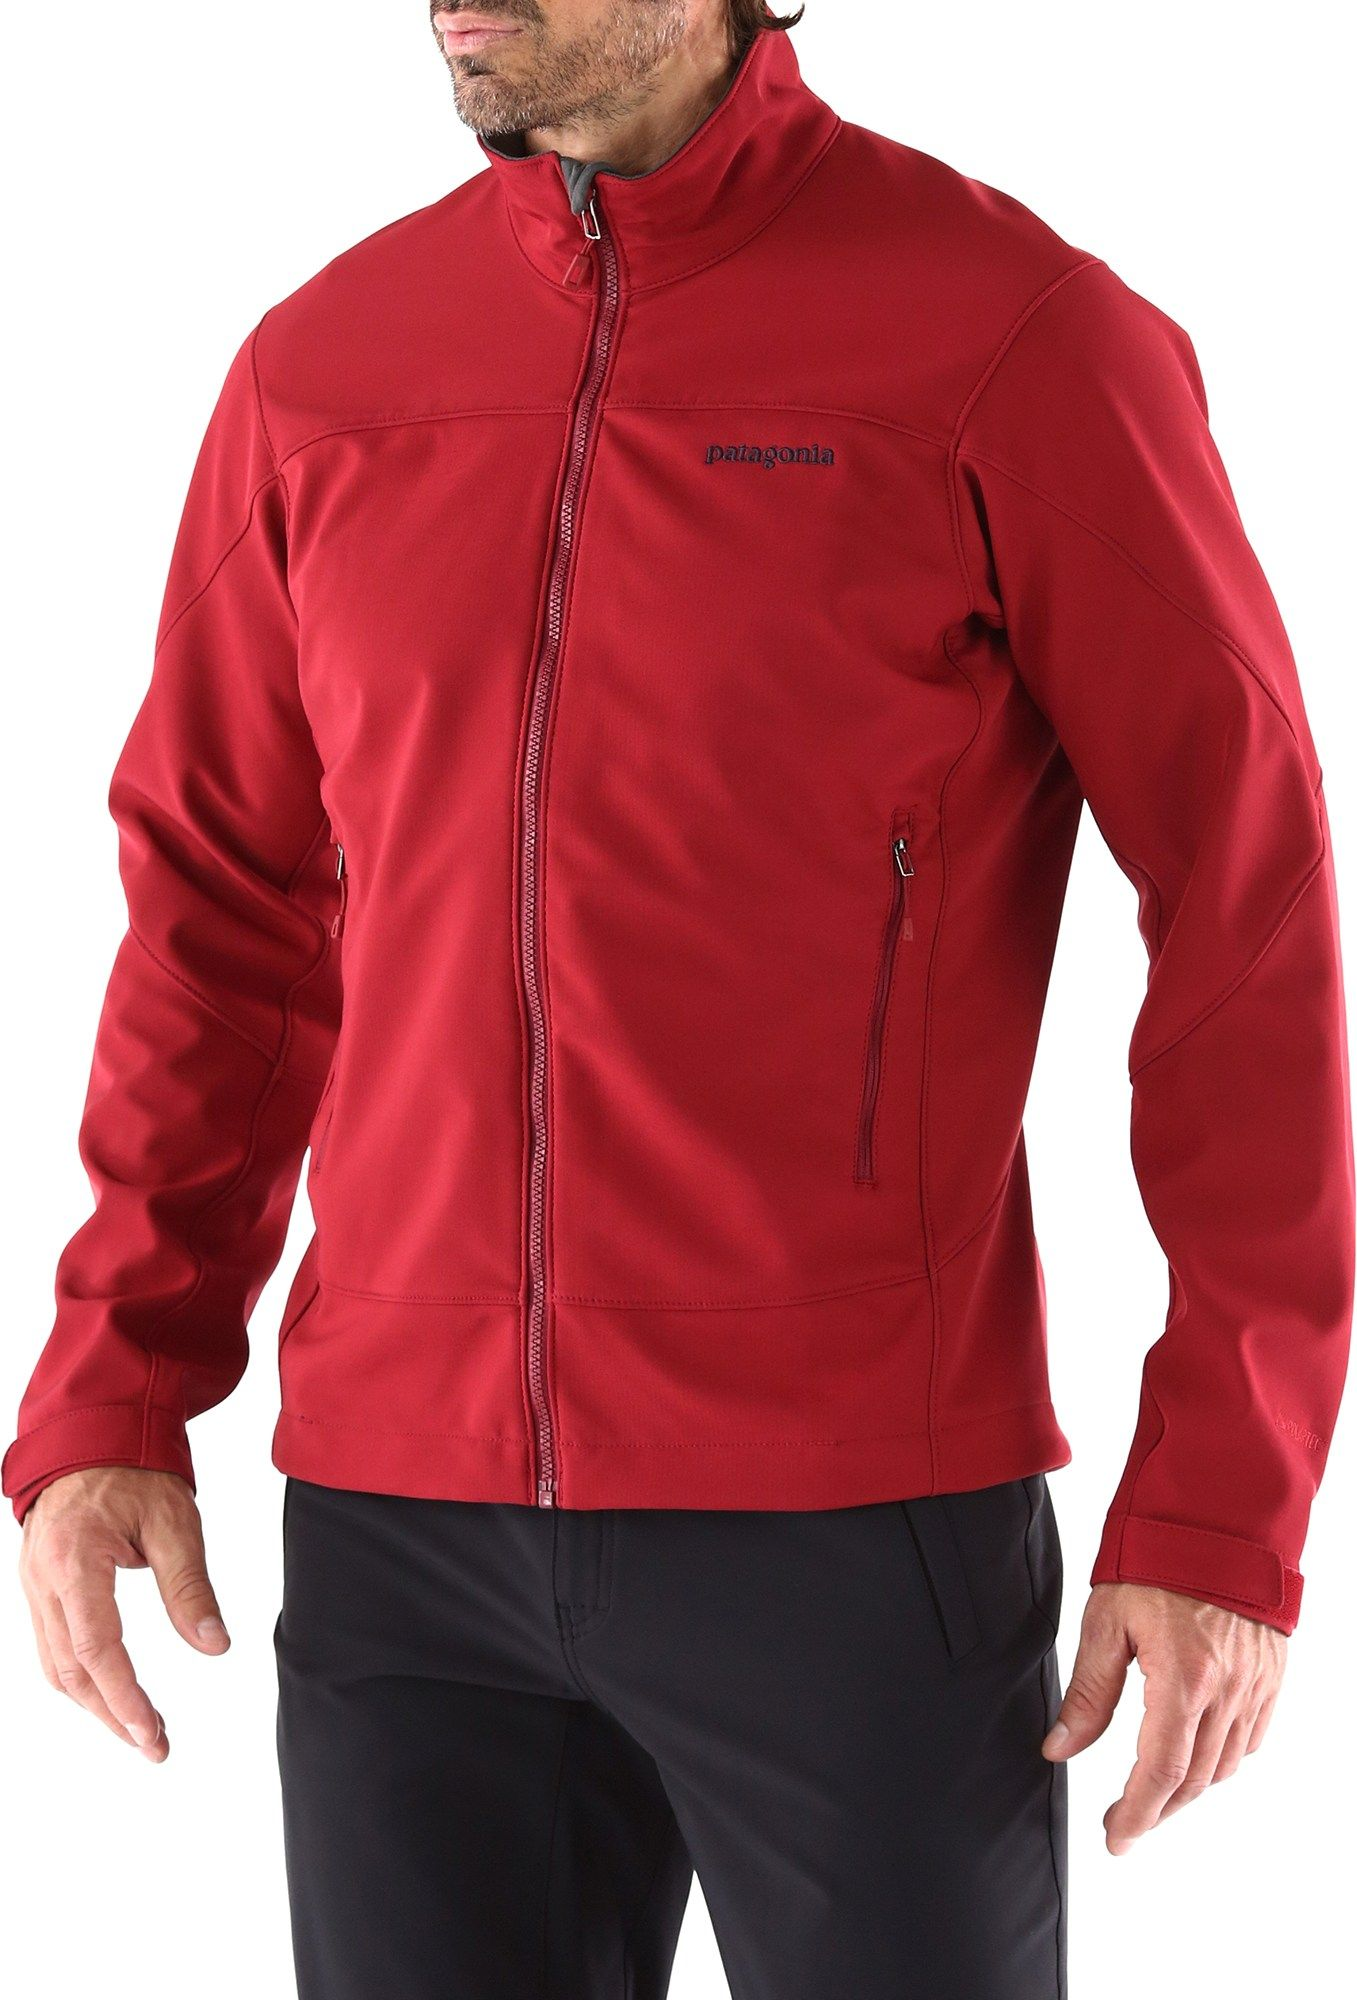 Adze Jacket In Red By Patagonia Mens Jackets Jackets Patagonia Mens [ 2000 x 1357 Pixel ]